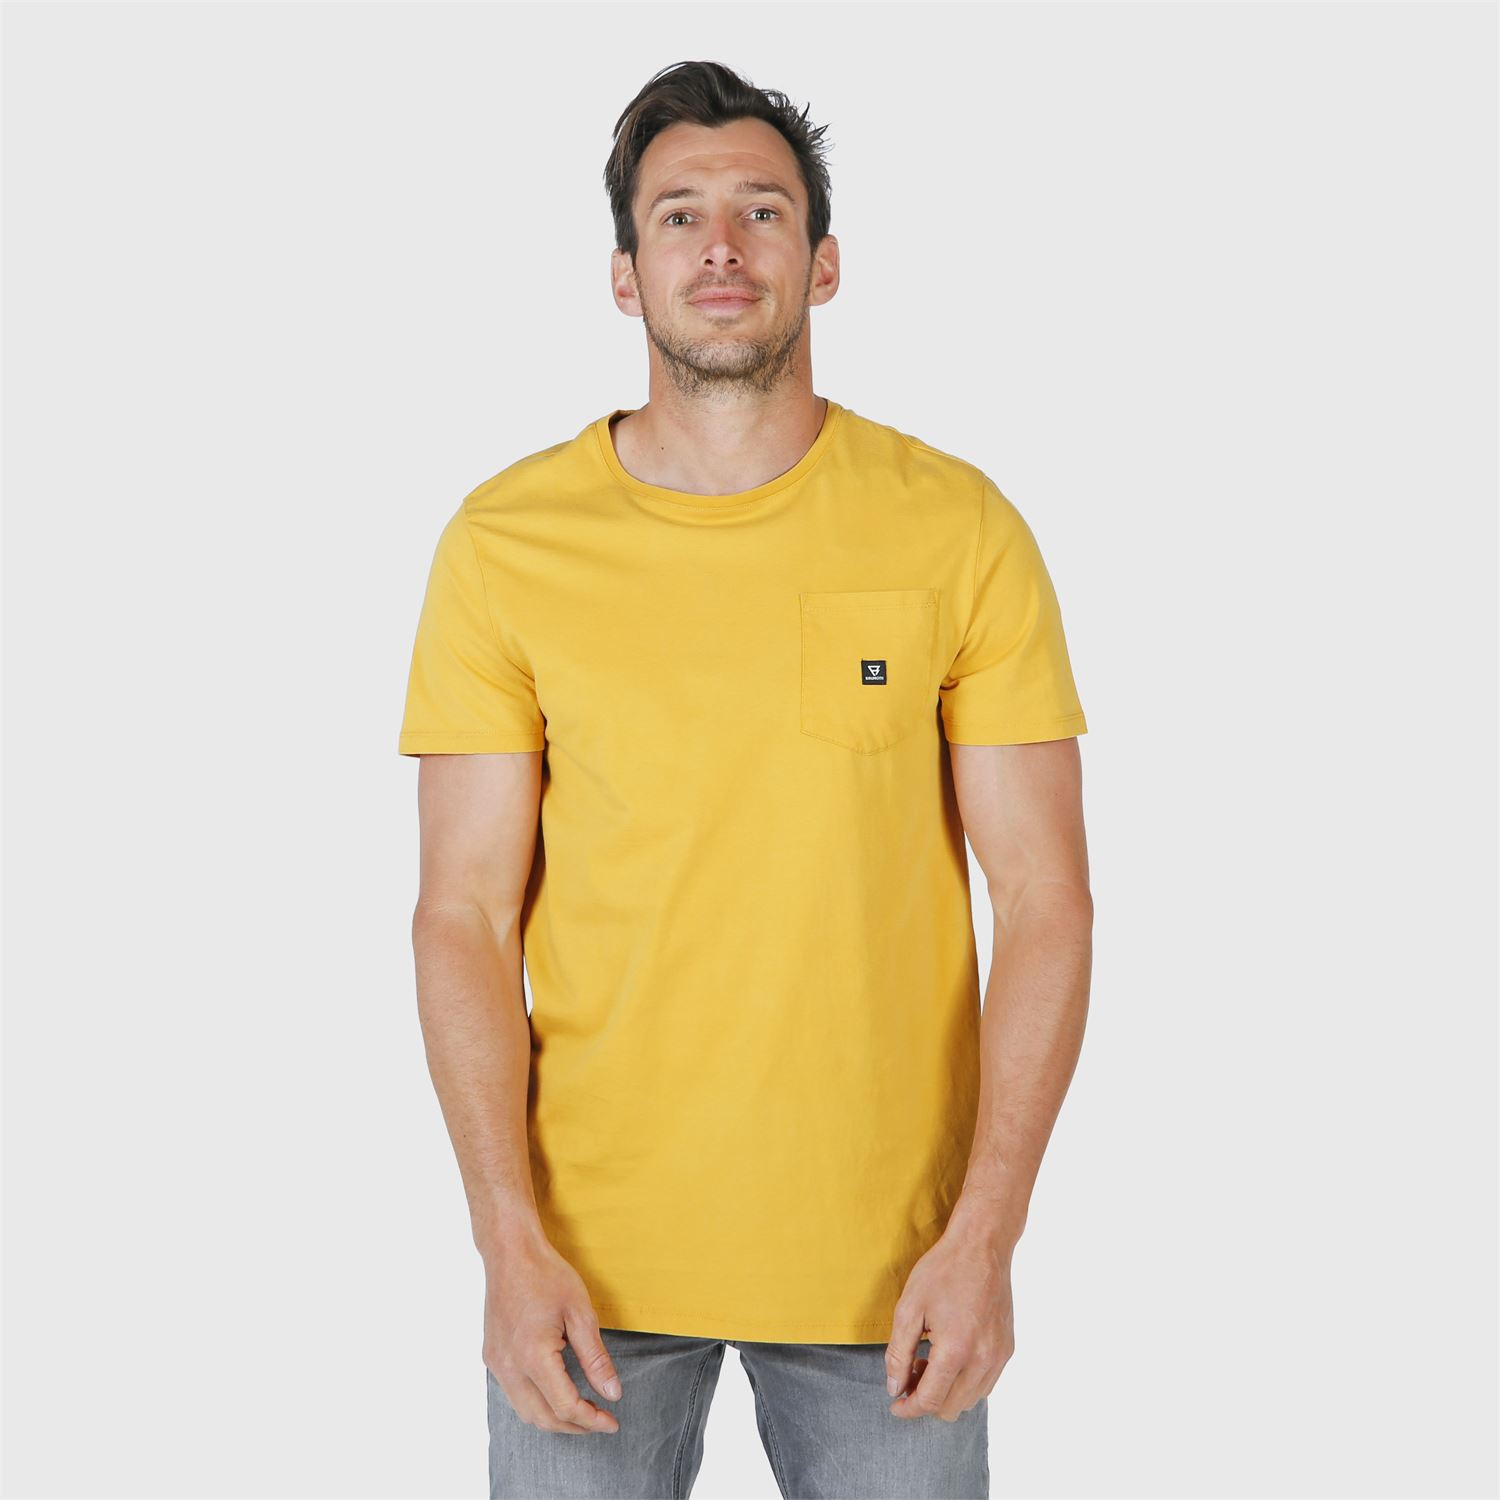 Axle Mens T-shirt